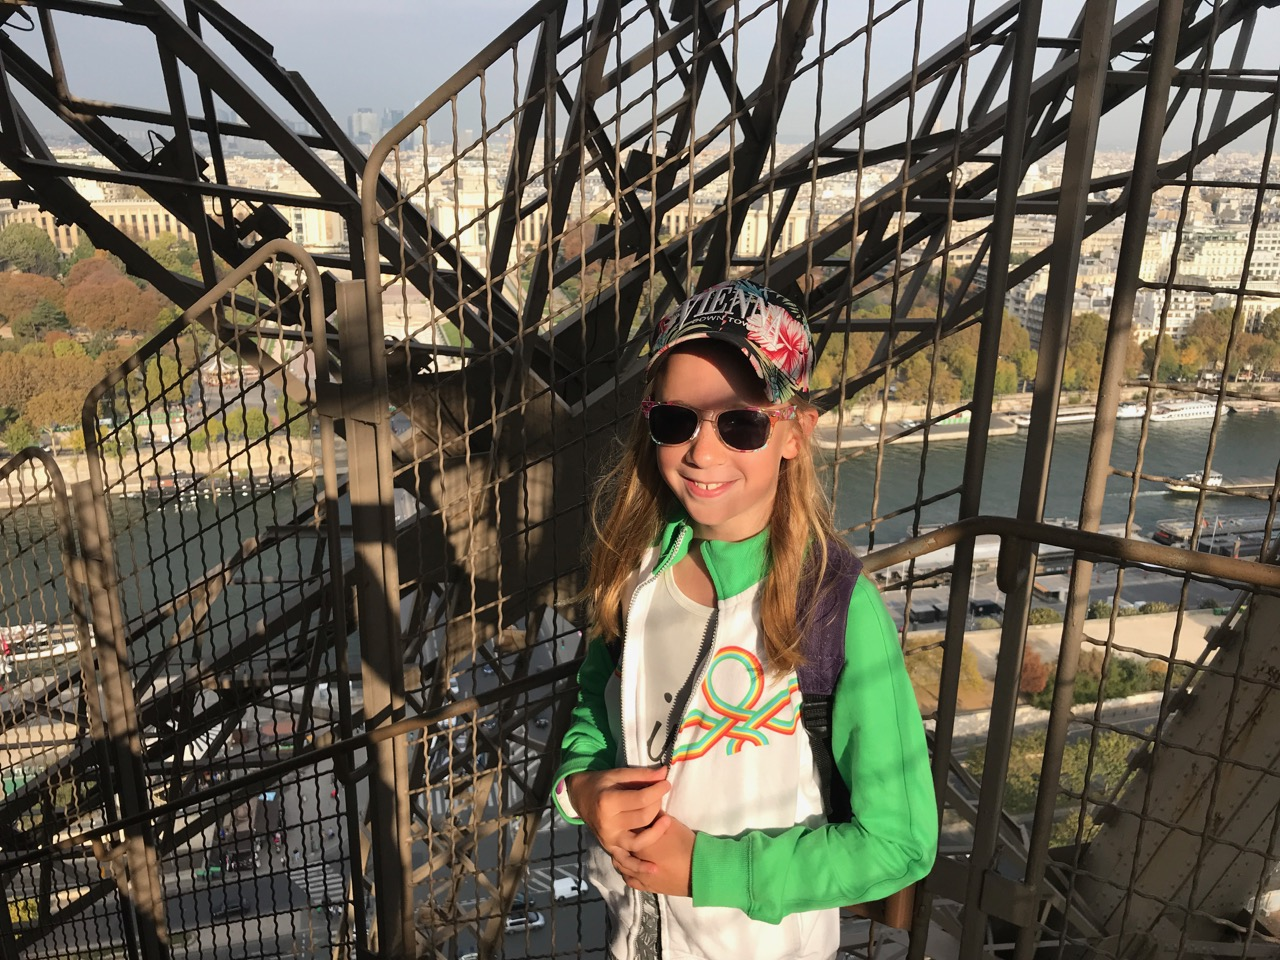 And when she was only halfway up (the Eiffel Tower) she was neither up nor down.